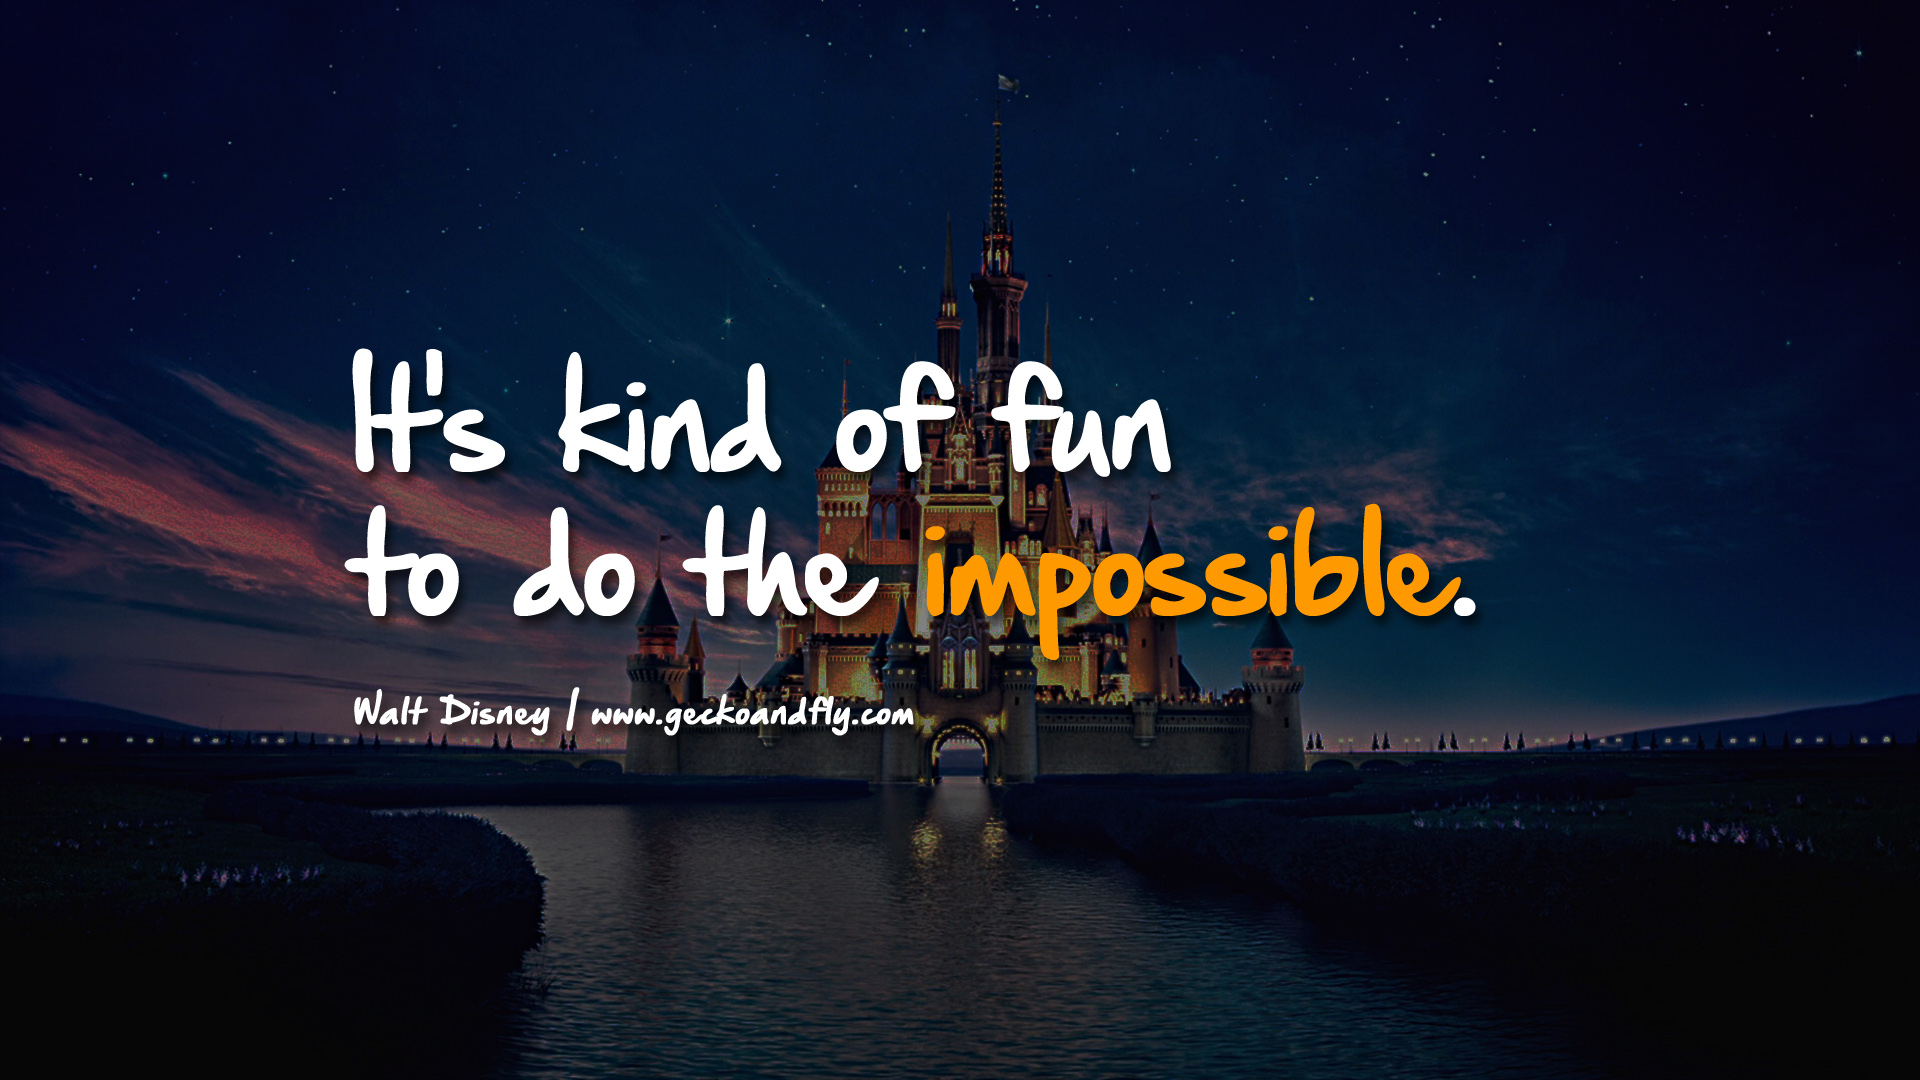 Disney Quotes Desktop Backgrounds additionally Img Lane Lindell Sexy Lingerie Photos 16 161054 additionally Gifts From Ancient Greece n 6152466 furthermore 5 Debilitating Health Conditions Linked To Mms Candies additionally What Is Right Path. on true religion wallpaper